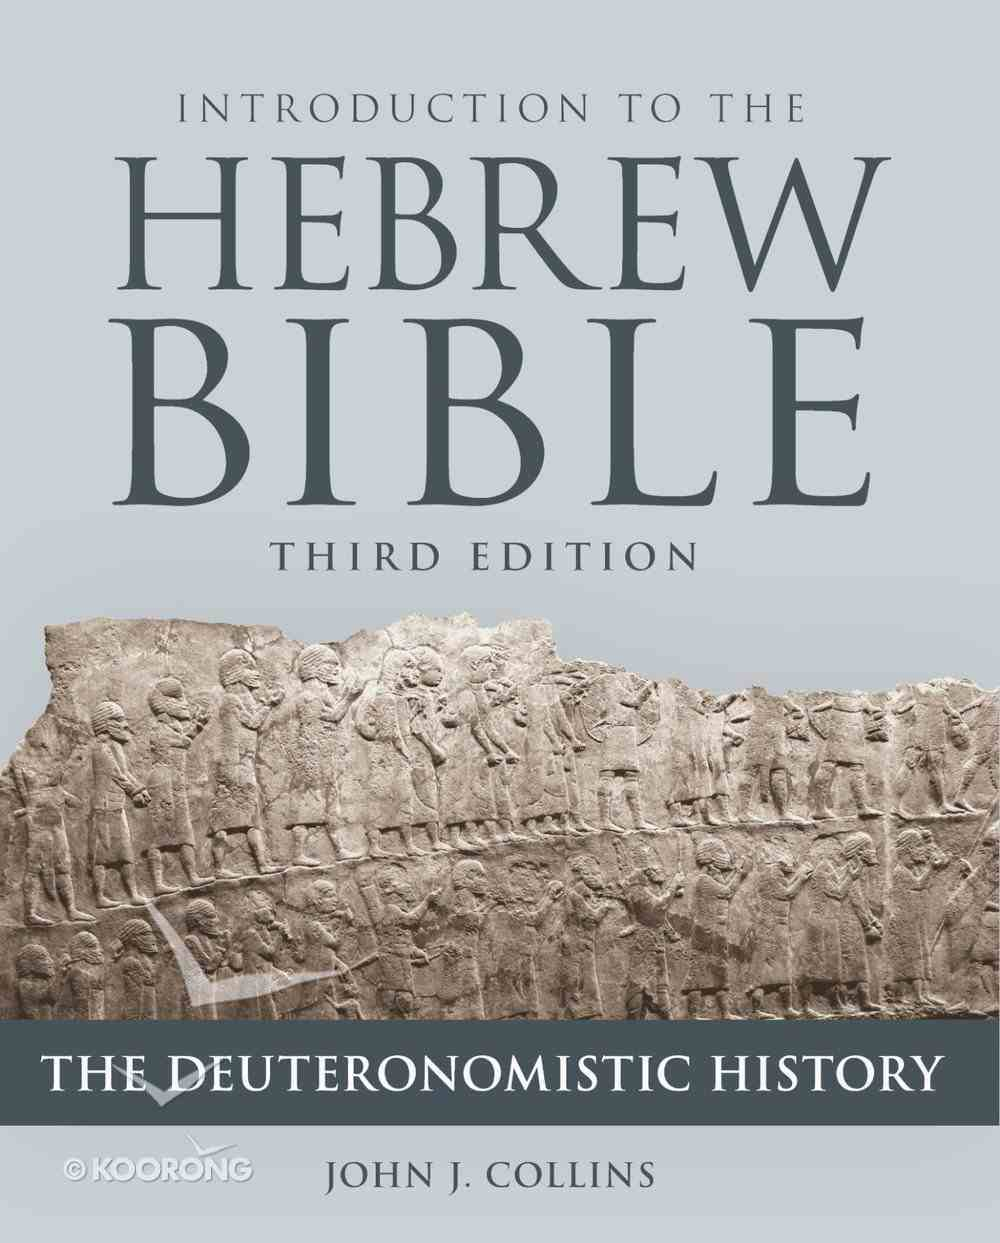 Introduction to the Hebrew Bible eBook